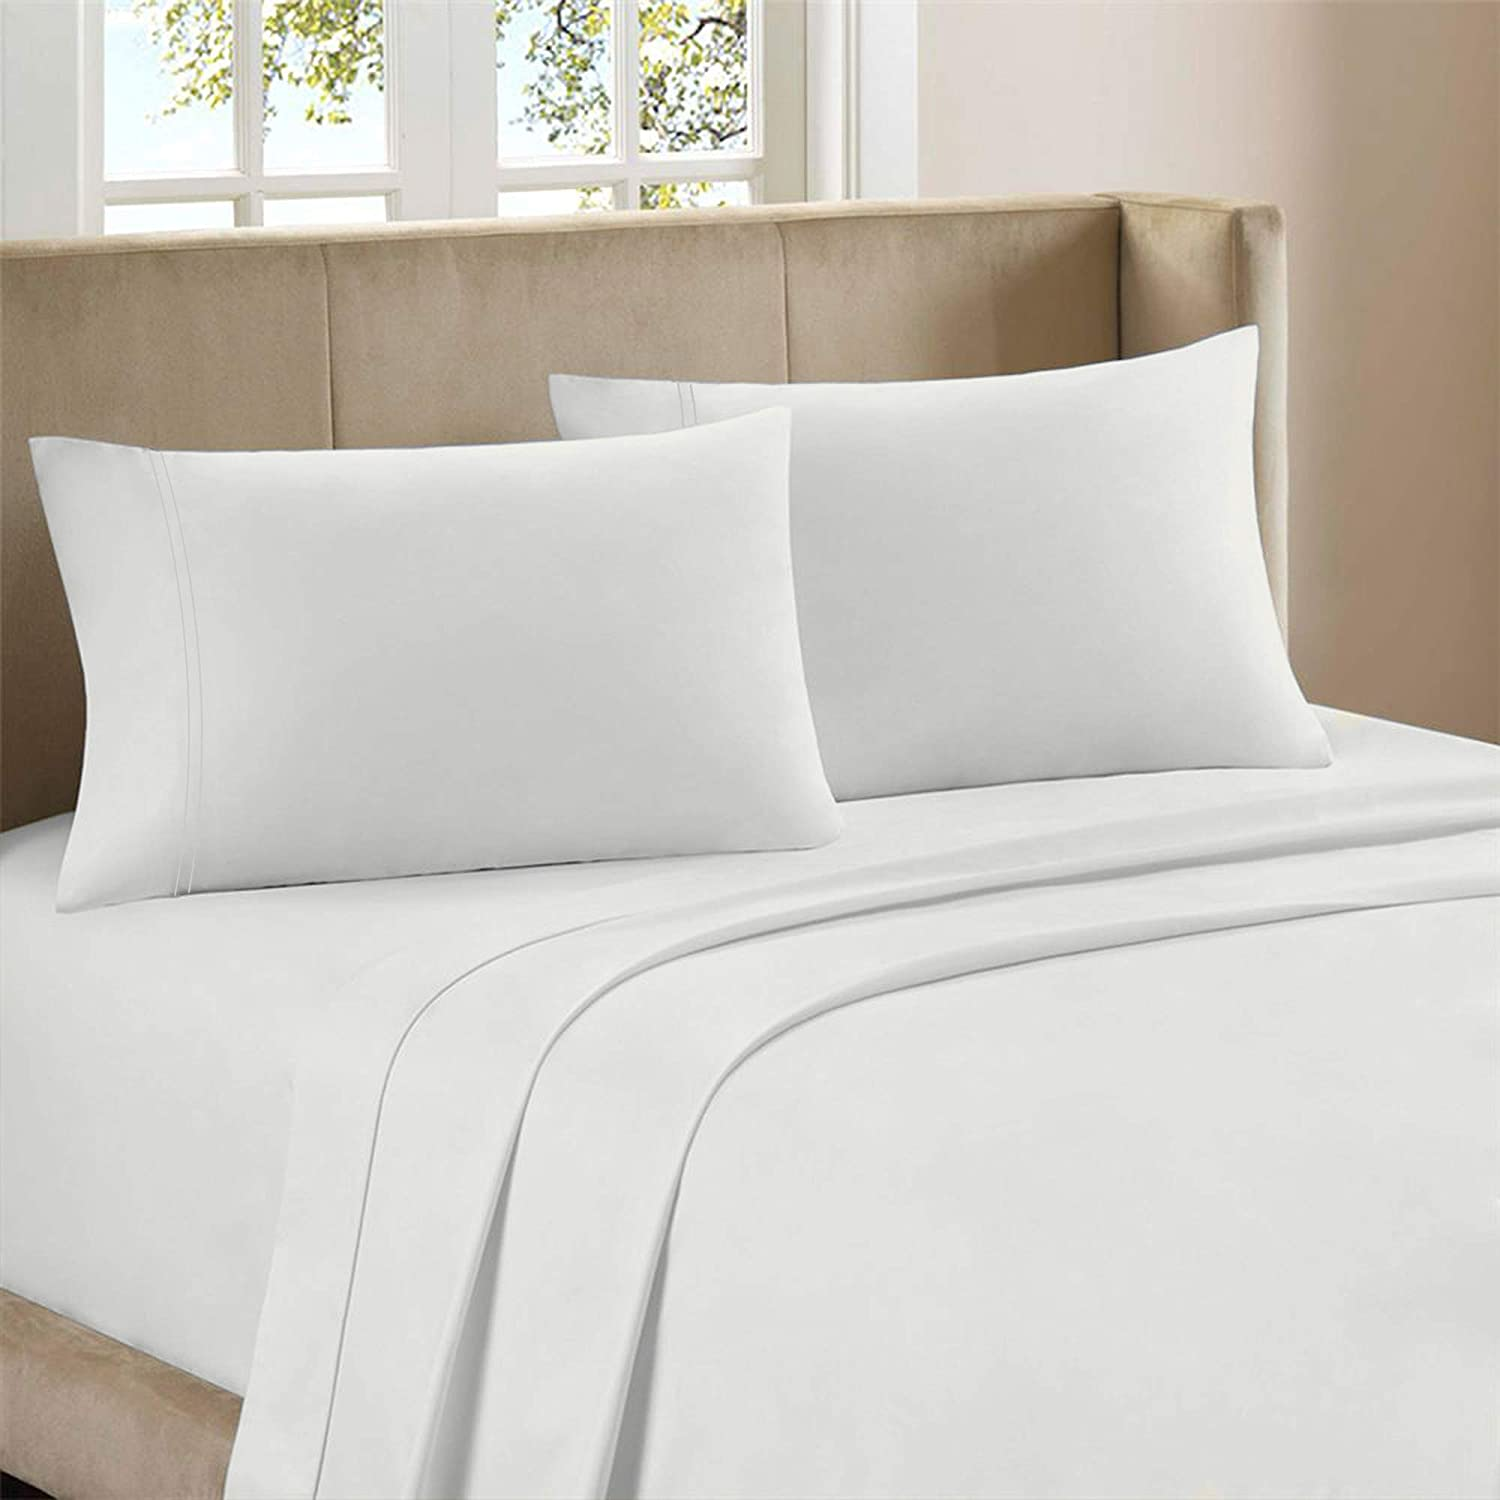 "Color Sense 800 Thread Count 100% Cotton 4 Piece Bed Sheet Set, Queen Sateen Sheets, Best fit-NO POP Outs, Soft, Highly Durable & Breathable, Patented Fitted Sheet fits Upto 18"" Deep Pocket, White"